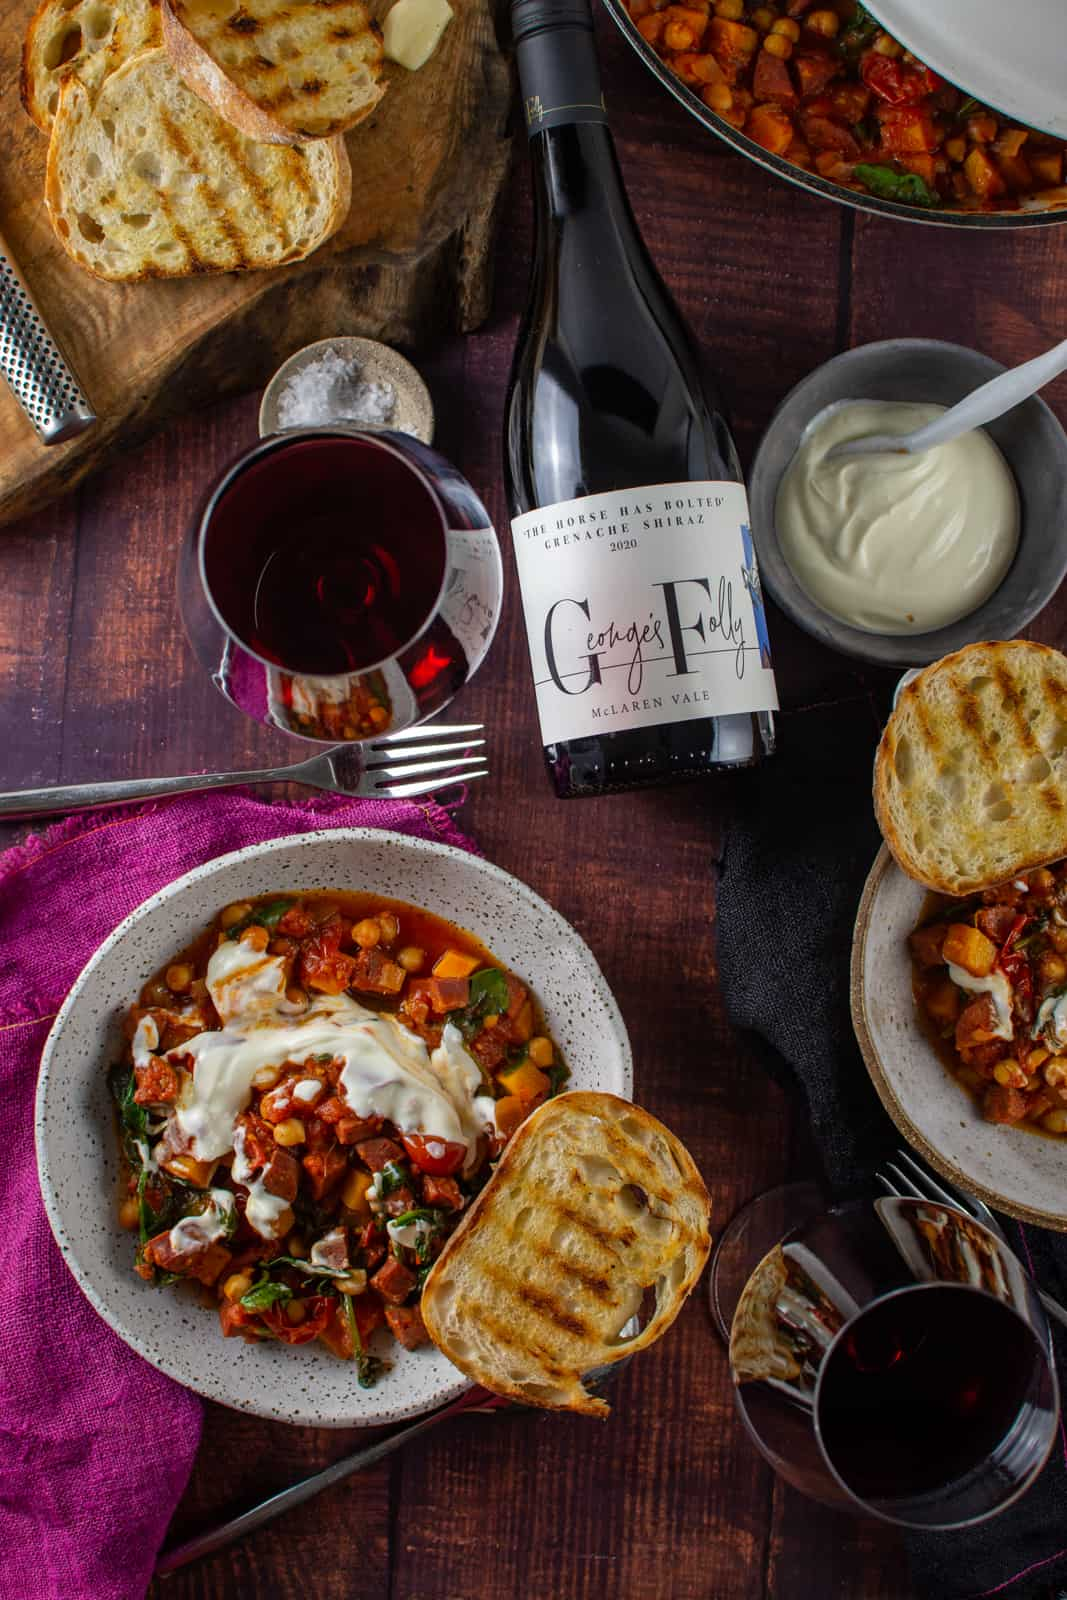 chorizo and chickpea stew on wooden table, georges folly wine and some toast